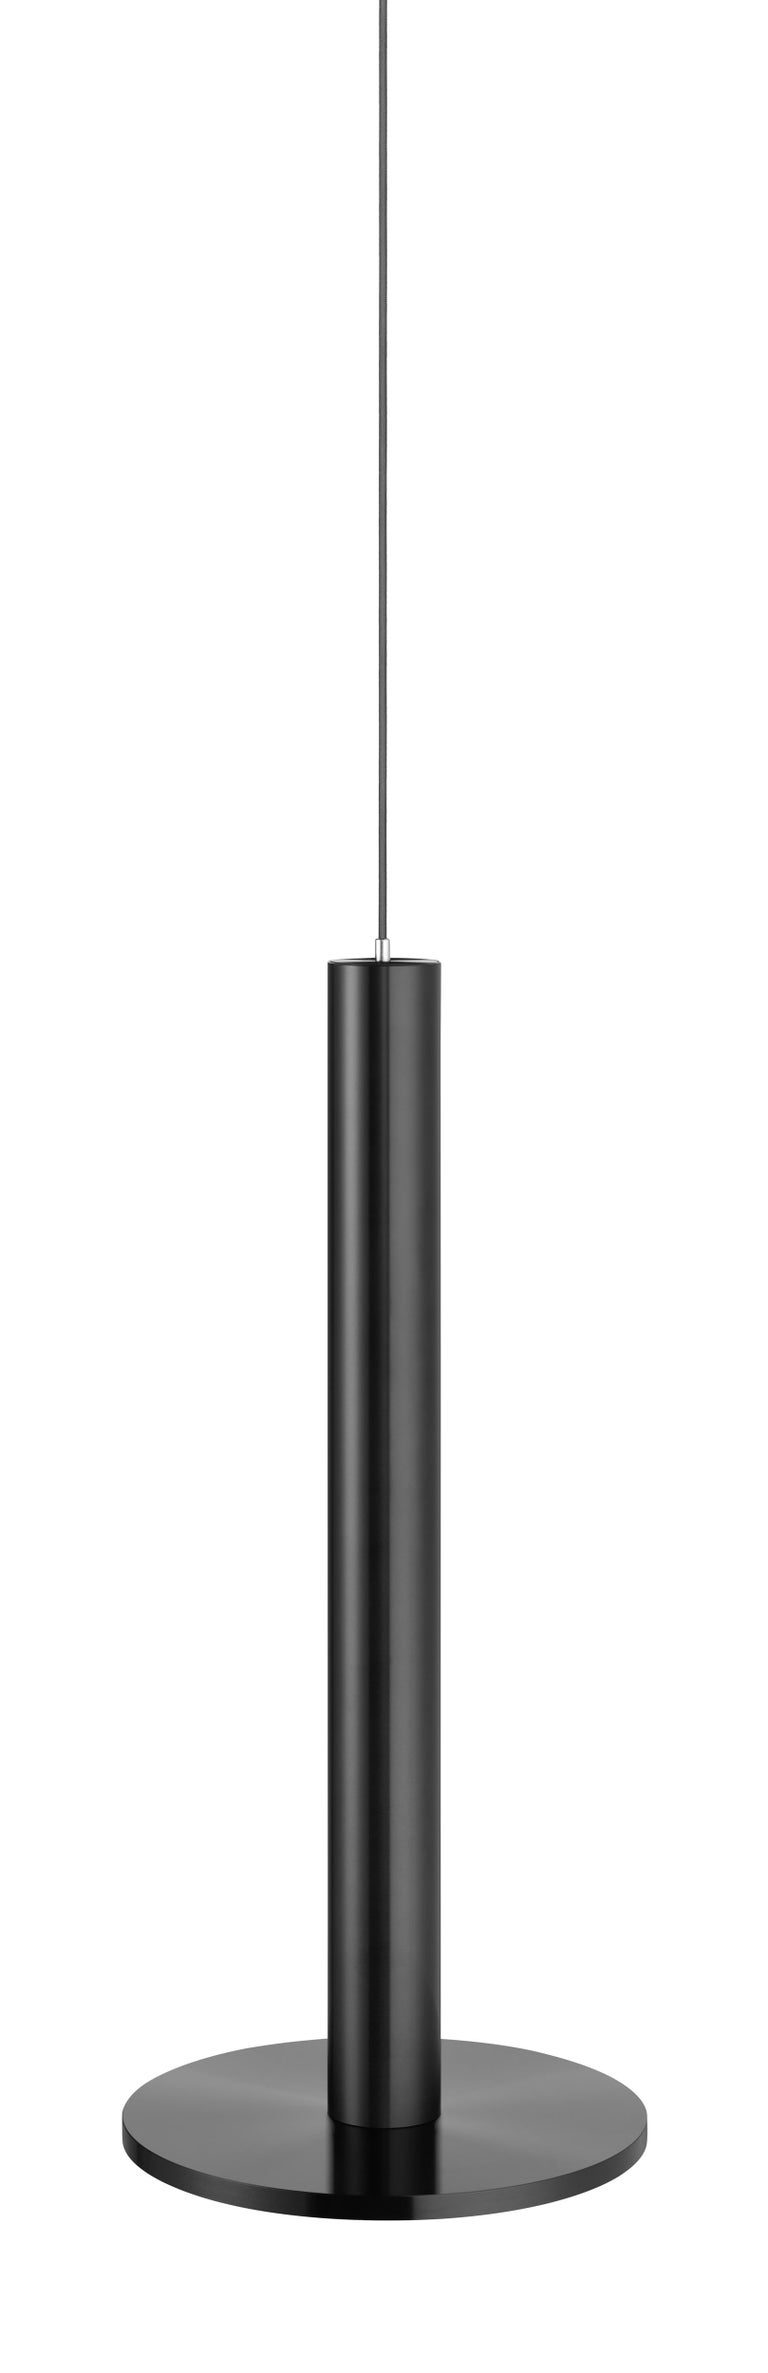 Modern Cielo XL Pendant Light in Satin Black by Pablo Designs For Sale